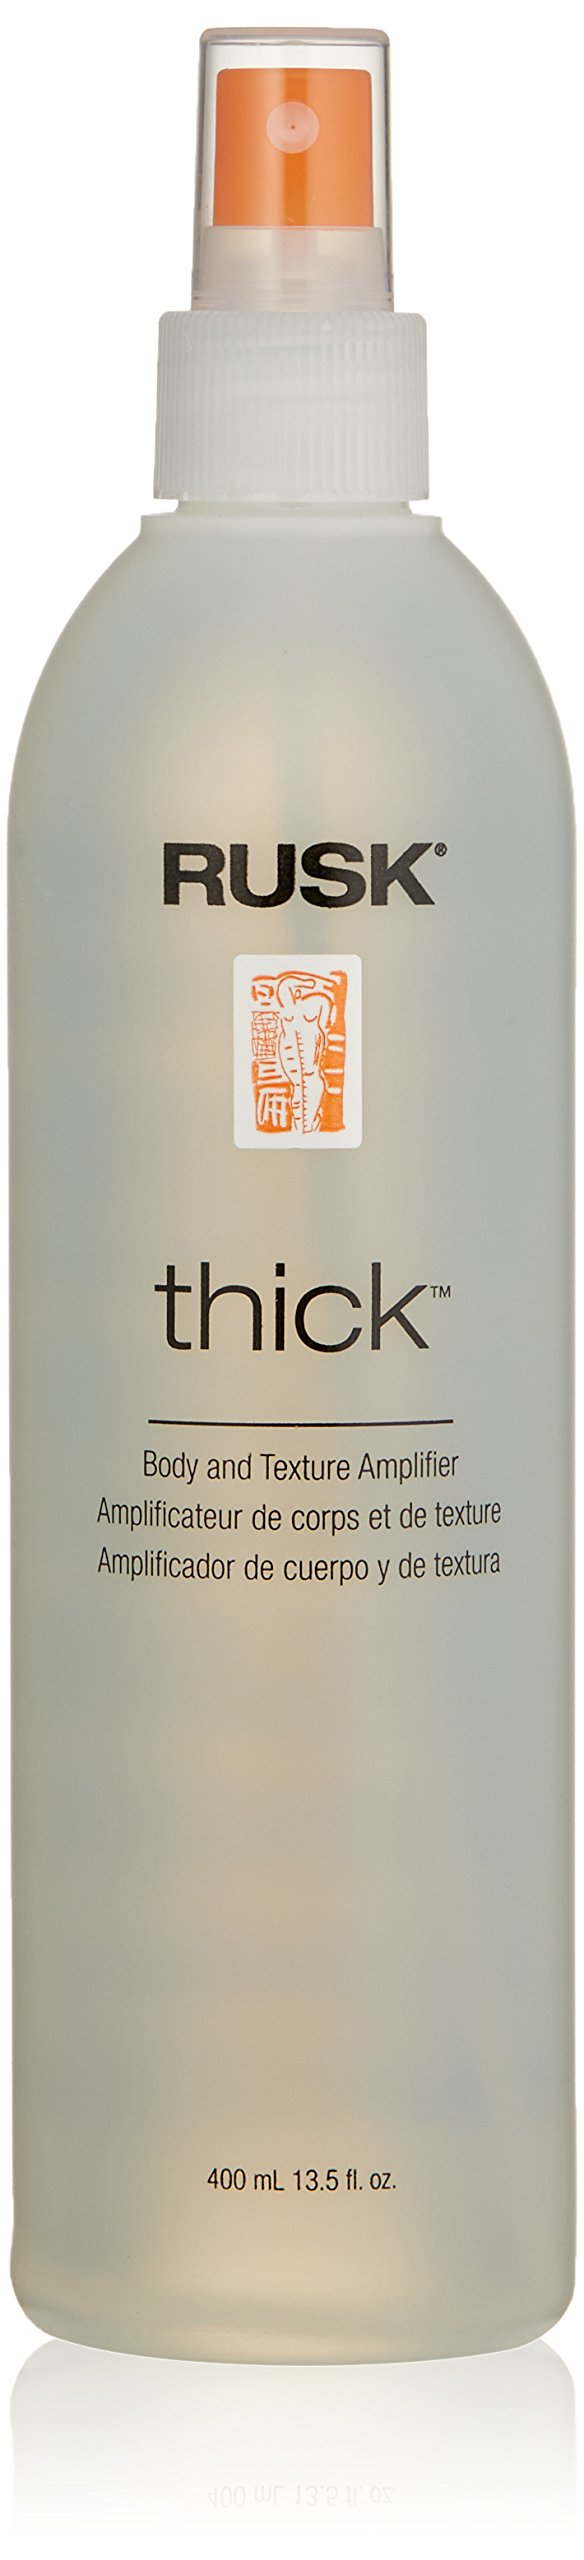 RUSK Designer Collection Thick Body and Texture Amplifier ,13.5 fl.oz. by RUSK